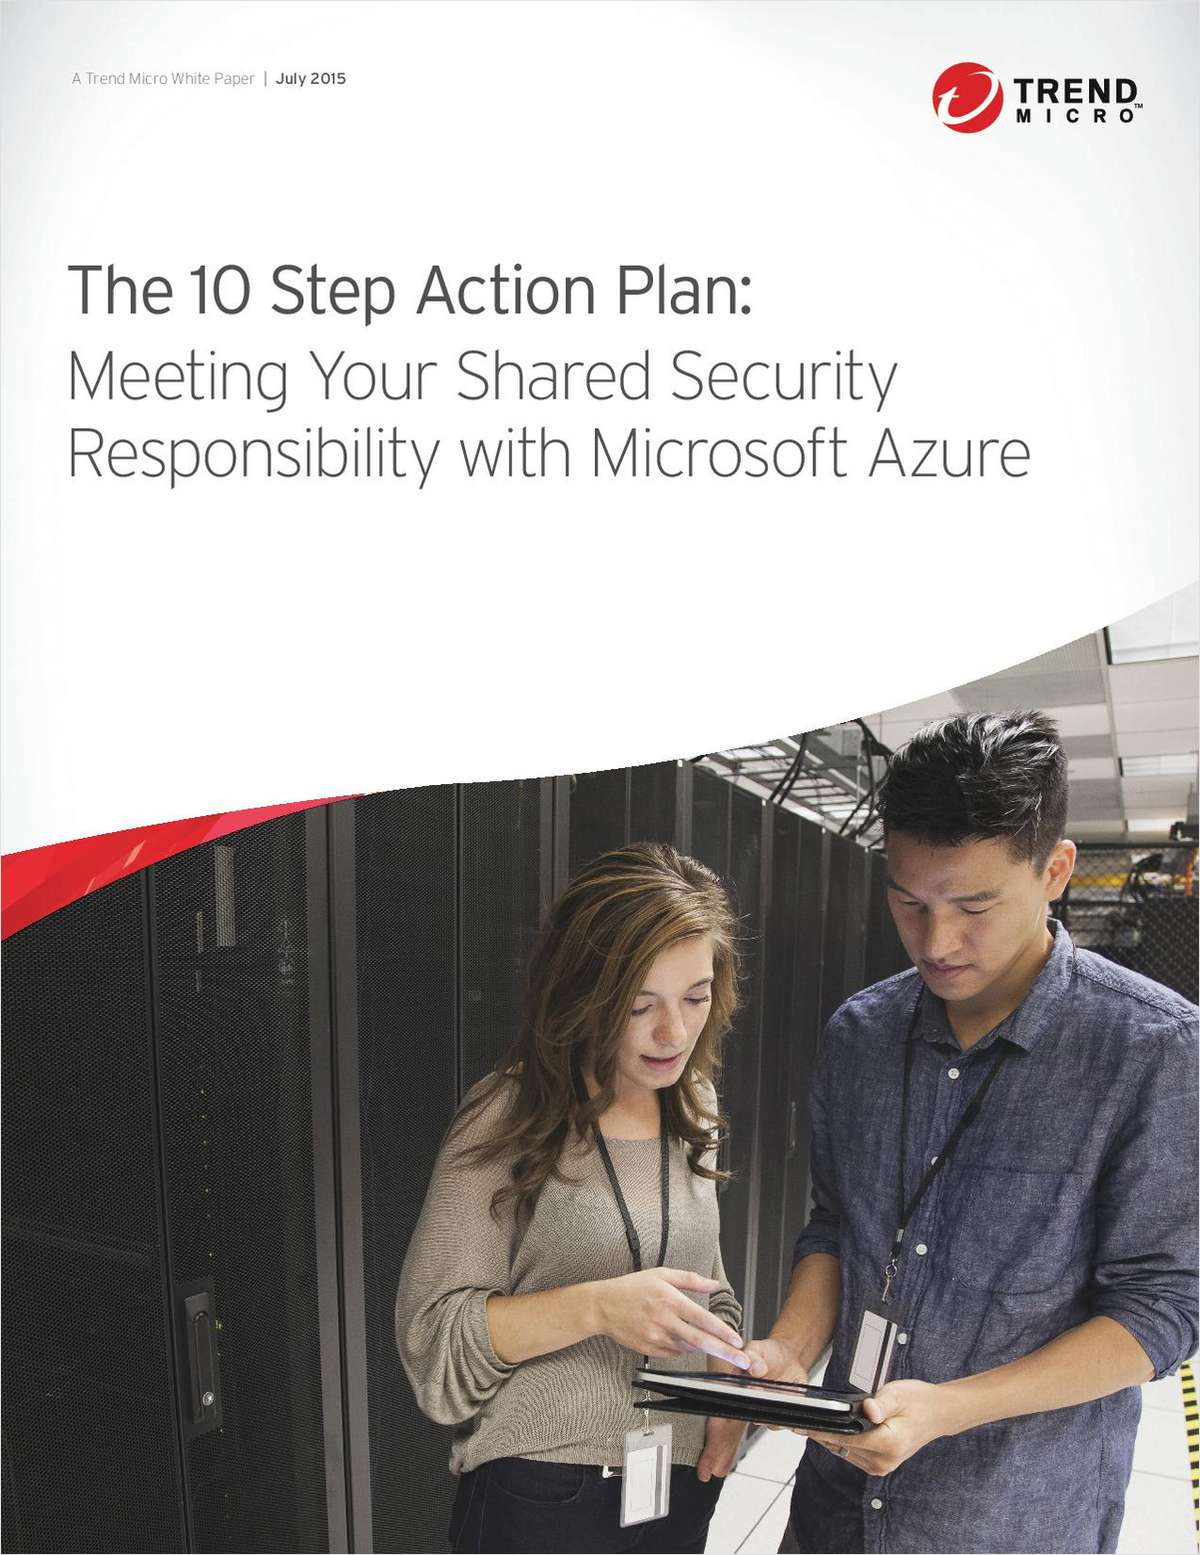 The 10 Step Action Plan: Meeting Your Shared Security Responsibility with Microsoft Azure